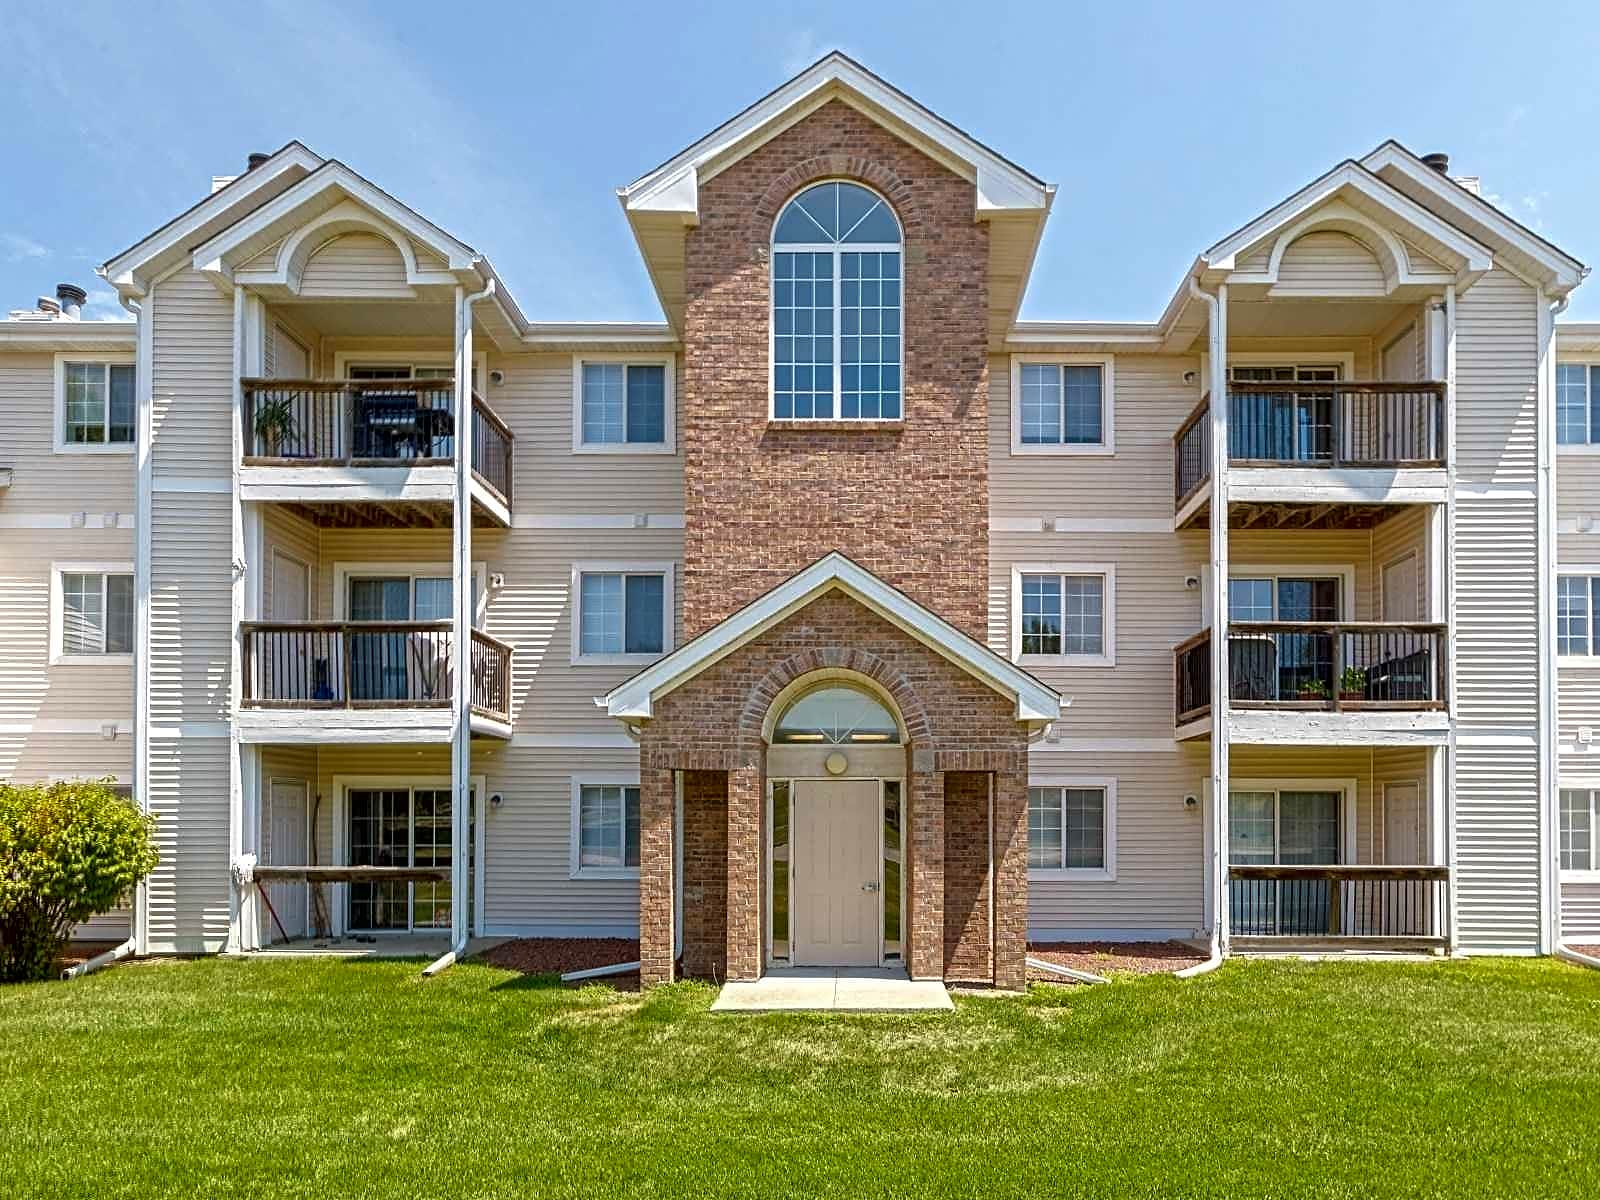 Apartments Near West Des Moines Westbrooke Apartments for West Des Moines Students in West Des Moines, IA